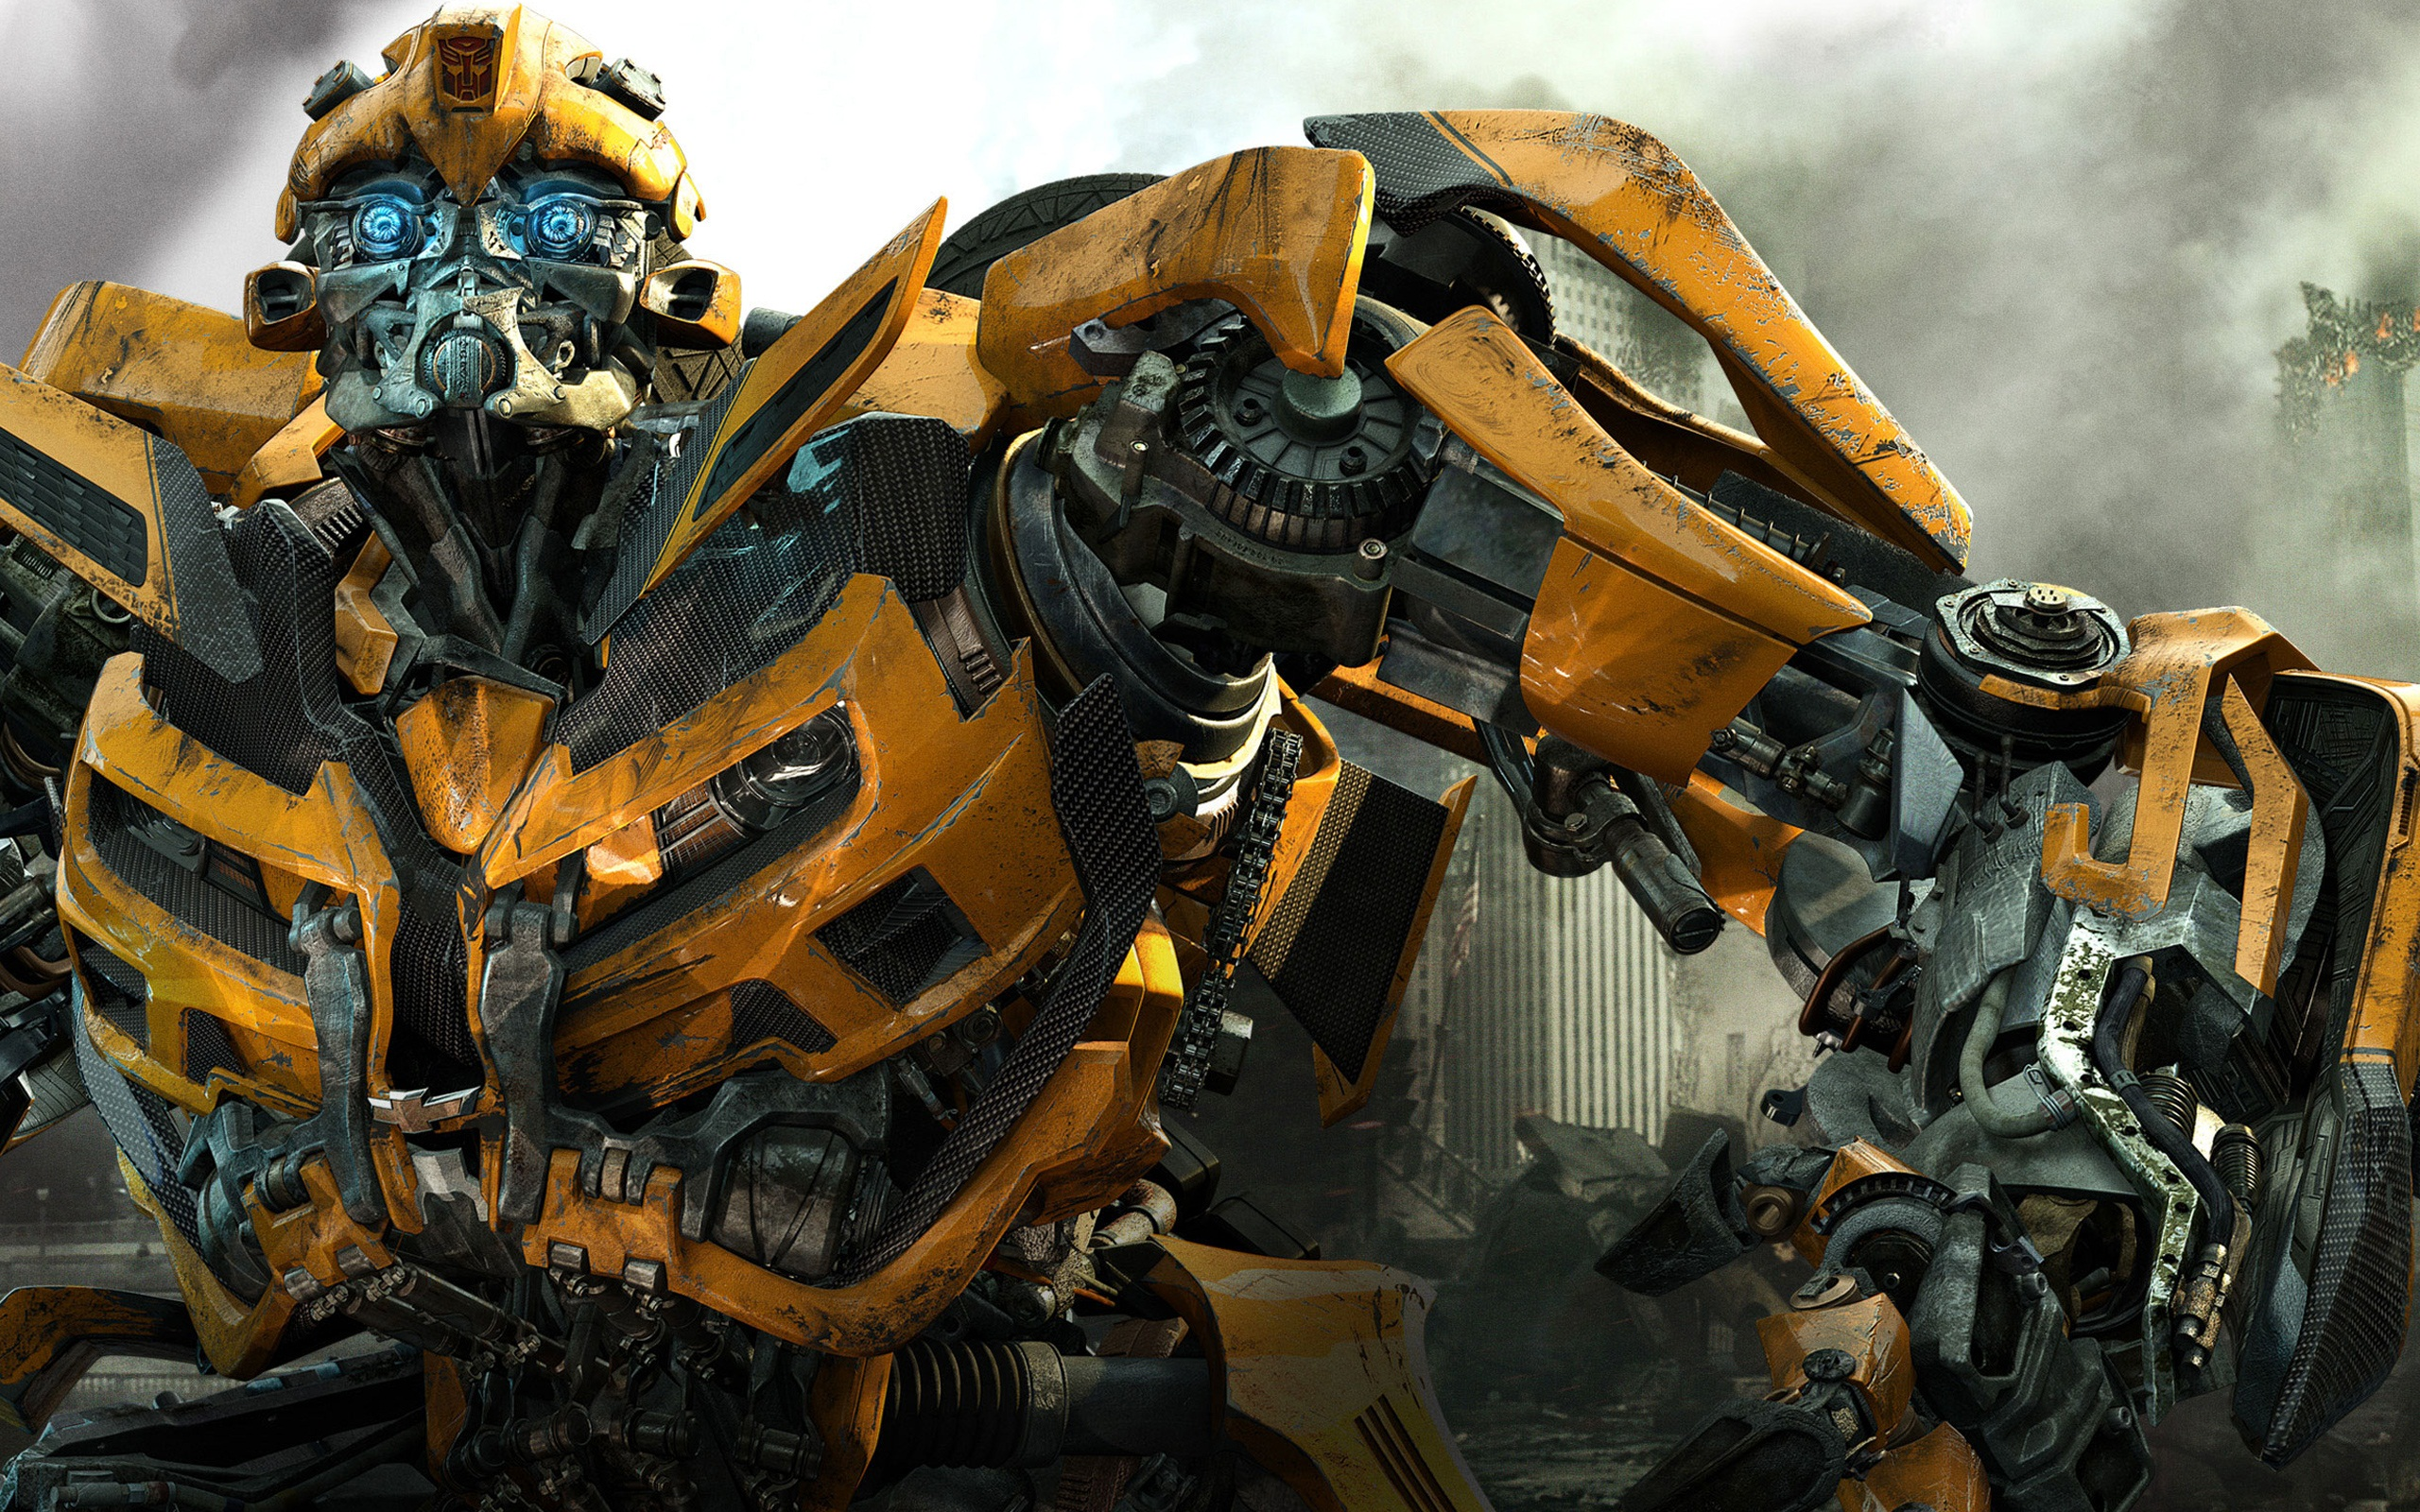 Transformers 3 Bumblebee Wallpapers HD Wallpapers 2560x1600